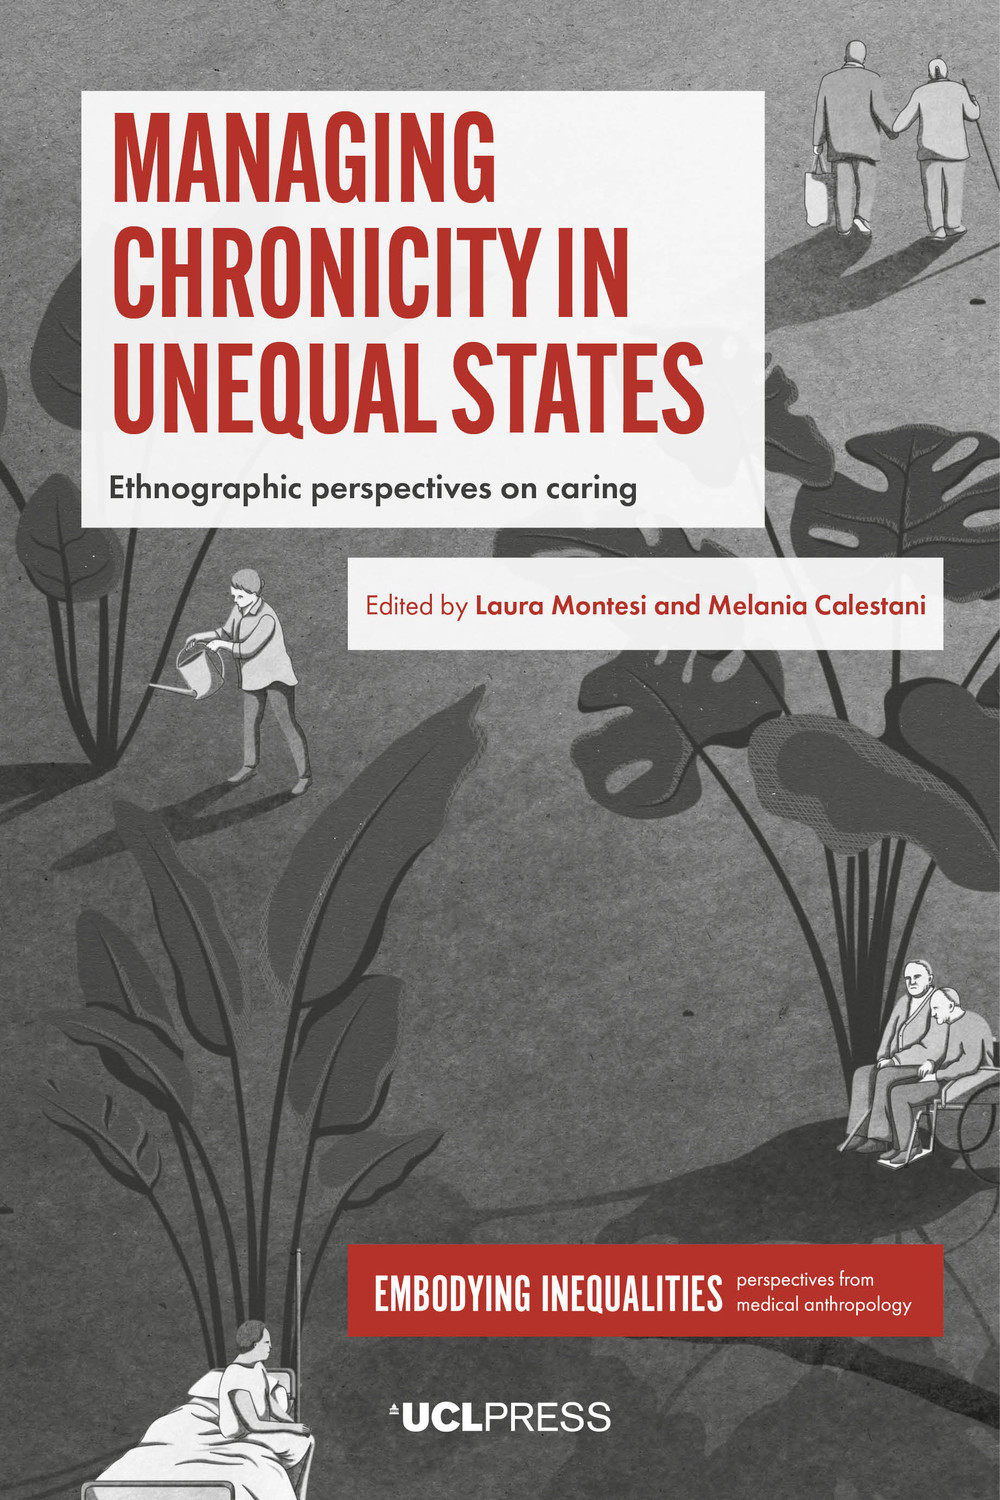 Managing Chronicity in Unequal States